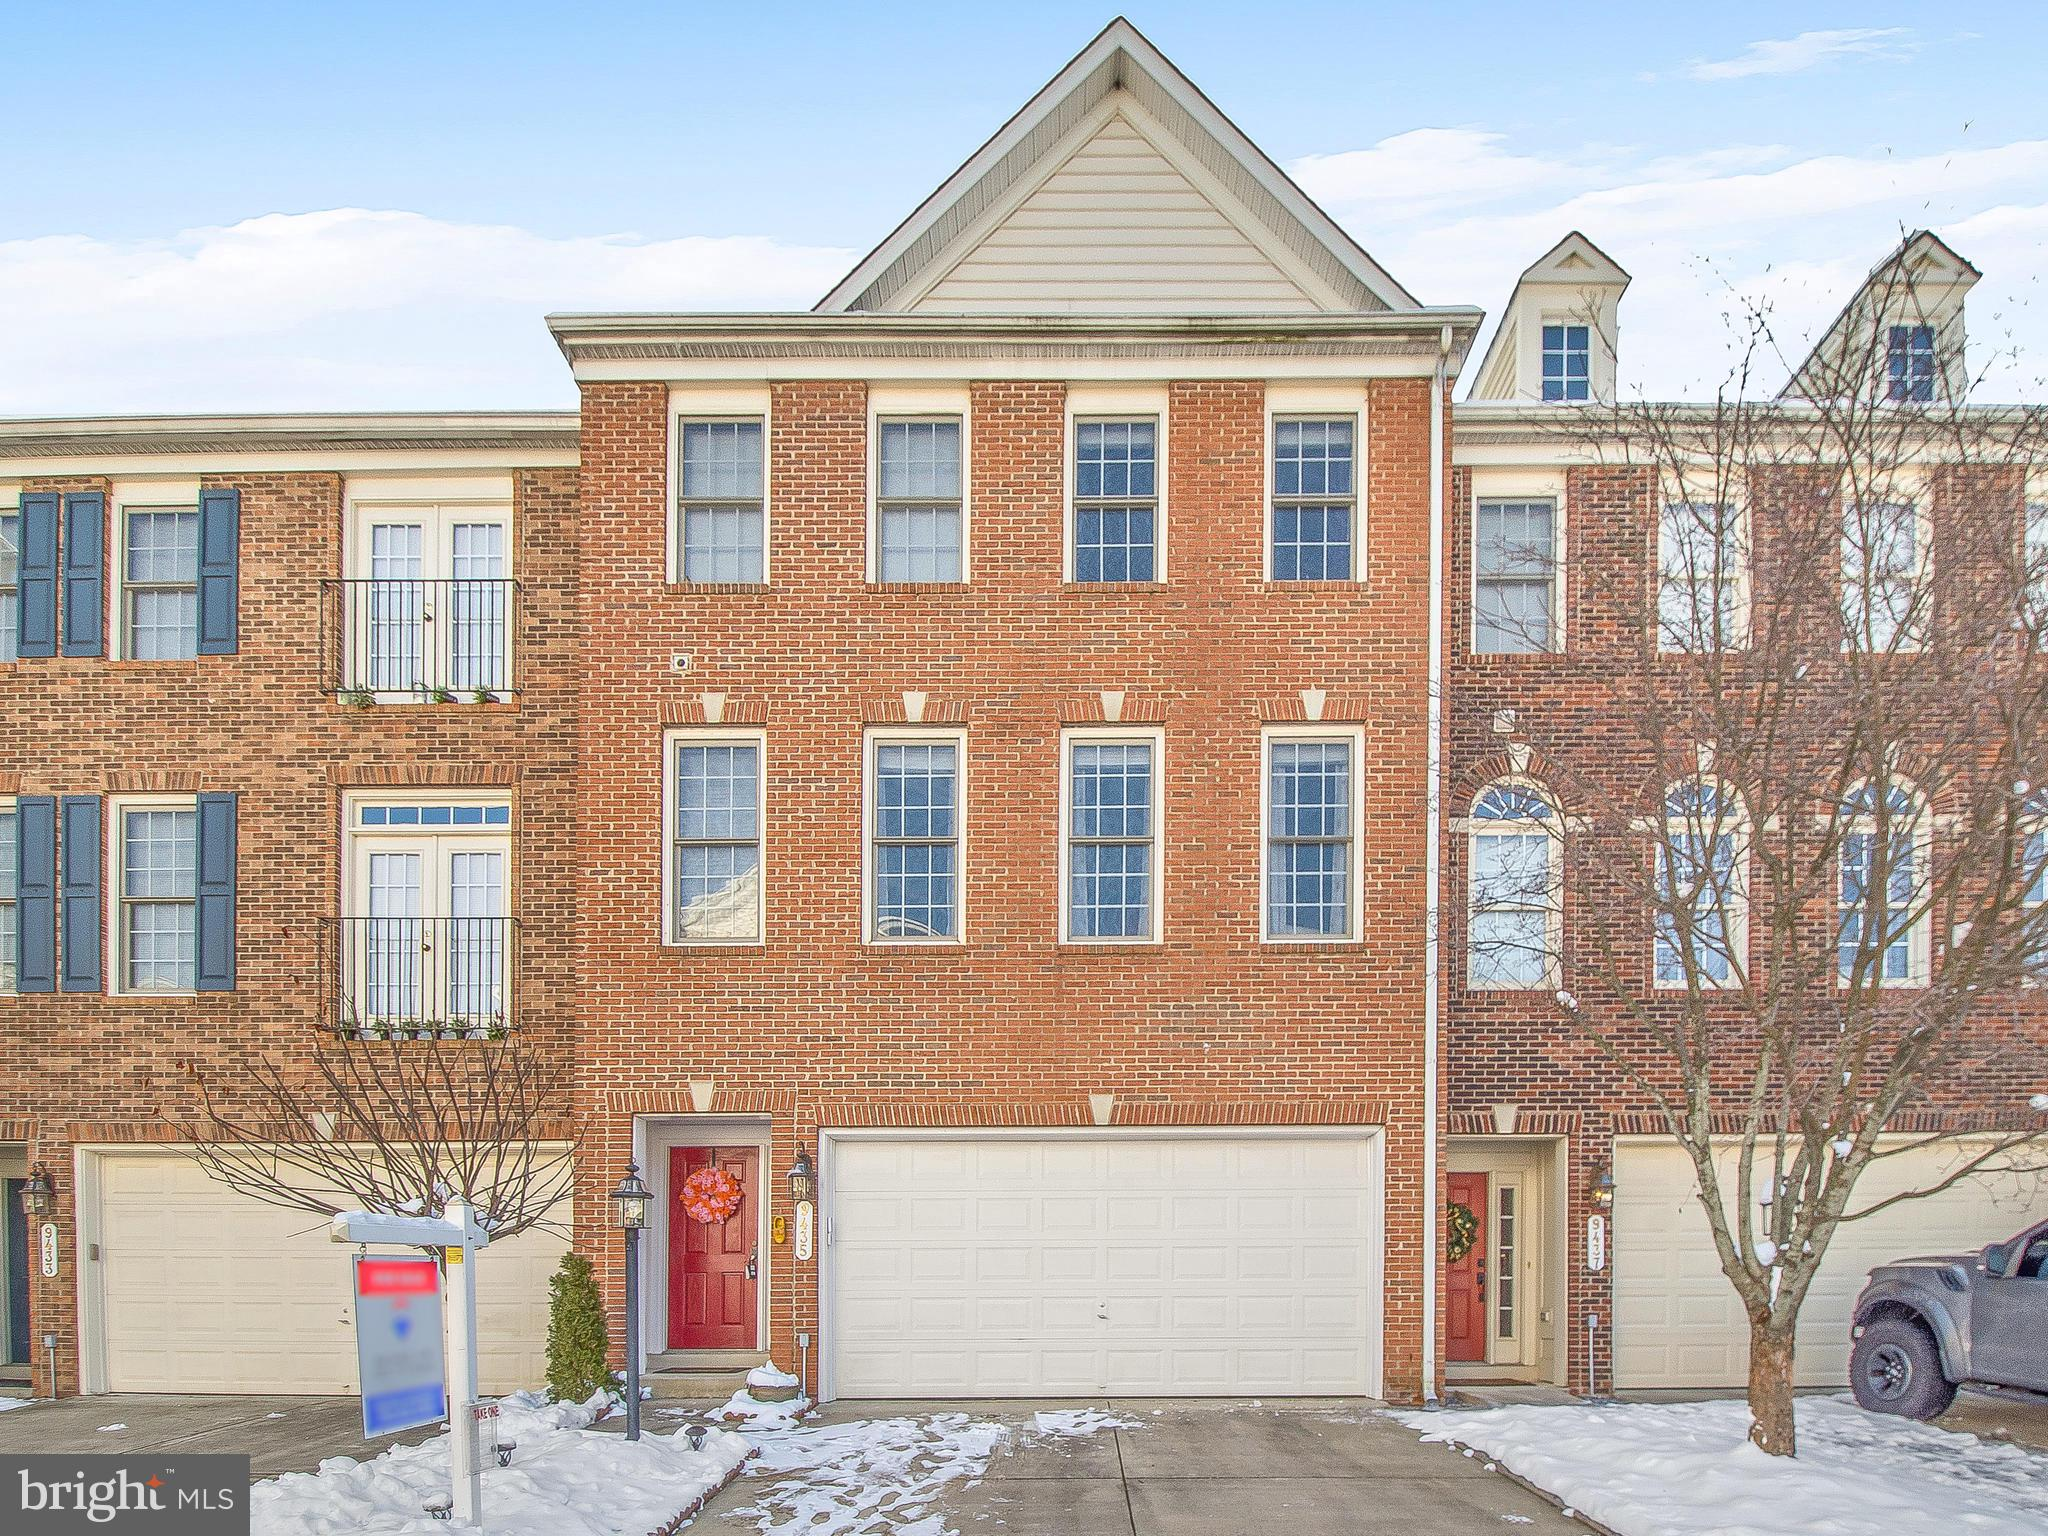 ***2,376 sq ***G-R-E-A-T LOCATION:PREMIUM BACKING TREE LINE VIEW AND NEXT TO GUEST PARKING ****OPEN FLOOR PLAN  *** OWNER'S  RECENT UPG. APPROX. $28,000 *** UPDATED CHERRY WOOD WOOD FLOORS MAIN LVL AND STAIRS/WOOD FLOORS TOP LEVEL ***REF.(2016).OVEN & RANGE (2015)/DISHWASHER(1 YR OLD) *** CERAMIC FLOORS IN BASEMENT *** UPG. LIGHT FIXTURES, UPDATED DECK, MAPLE CABINETS, CORIAN COUNTER TOPS, CUSTOM BACK SPLASHES IN KITCHEN** HIGH CEILINGS, FIREPLACE.